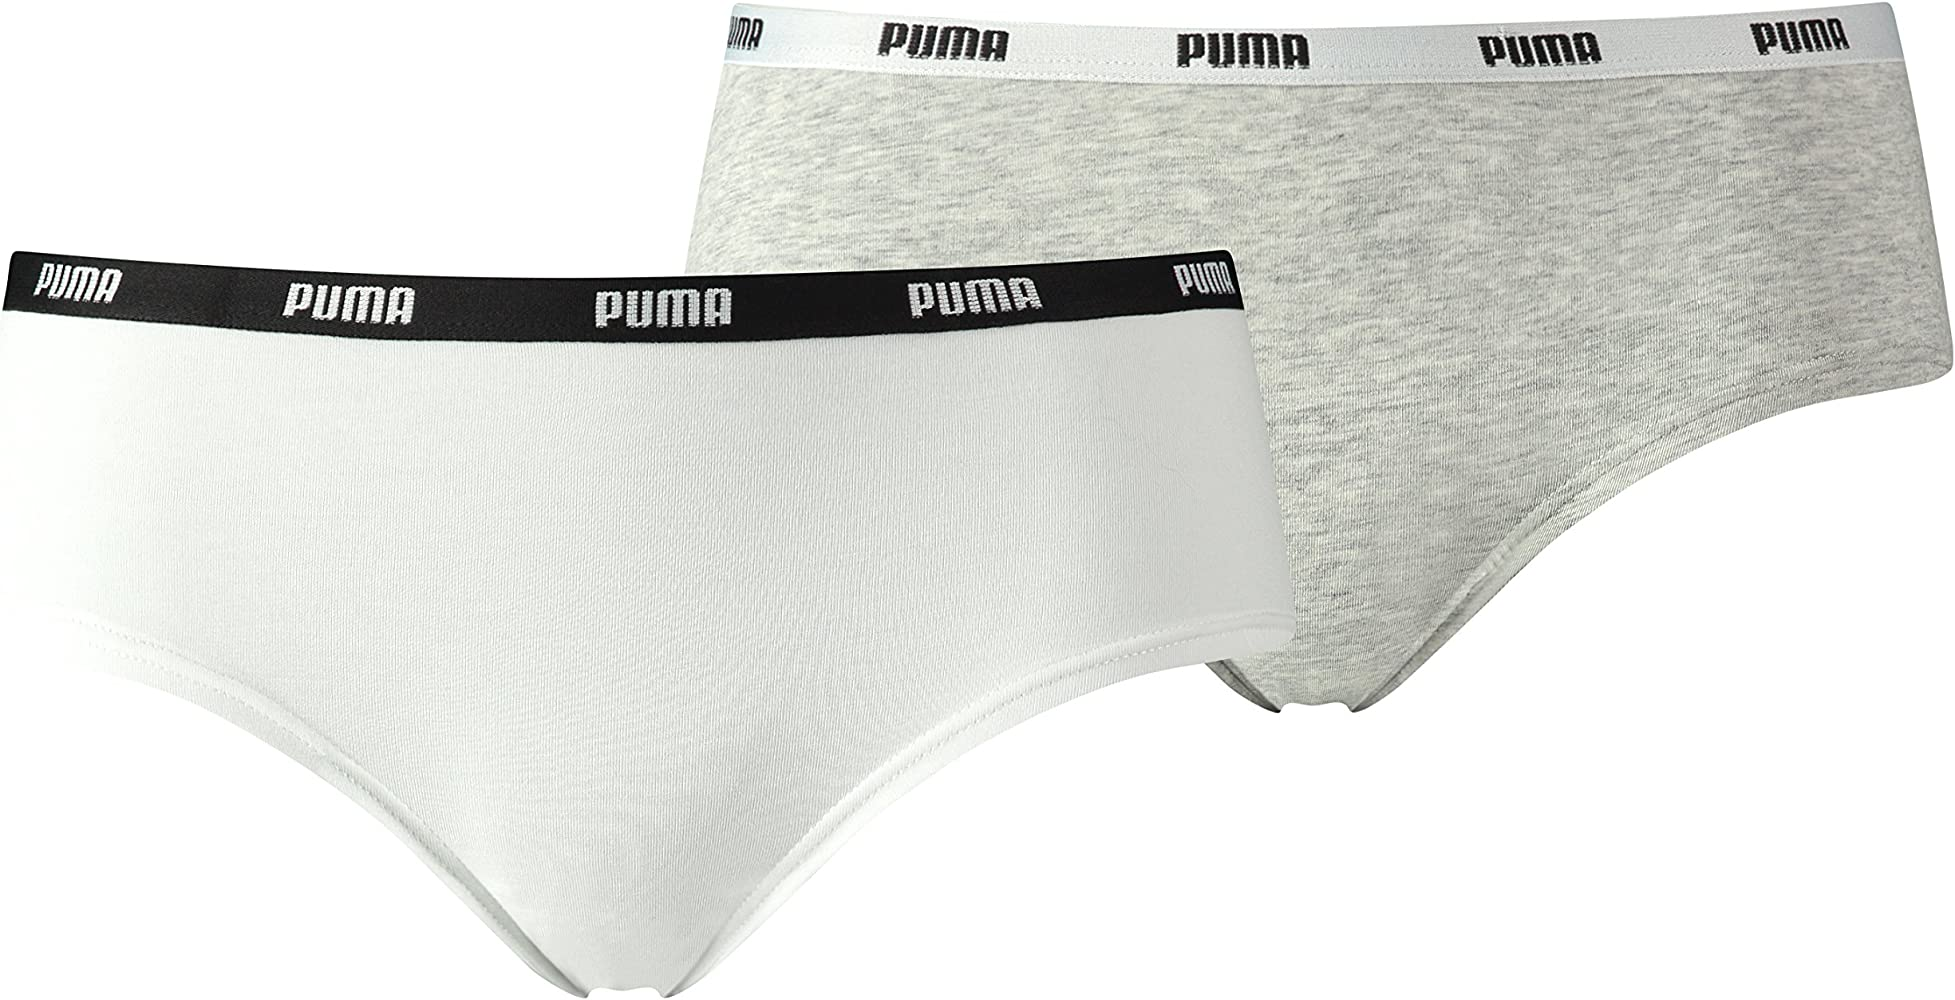 PUMA – Iconic Hipster 2p, Braguitas para Mujer, Mujer, Iconic Hipster 2P, Bianco/Grey Melange, XL: Amazon.es: Deportes y aire libre